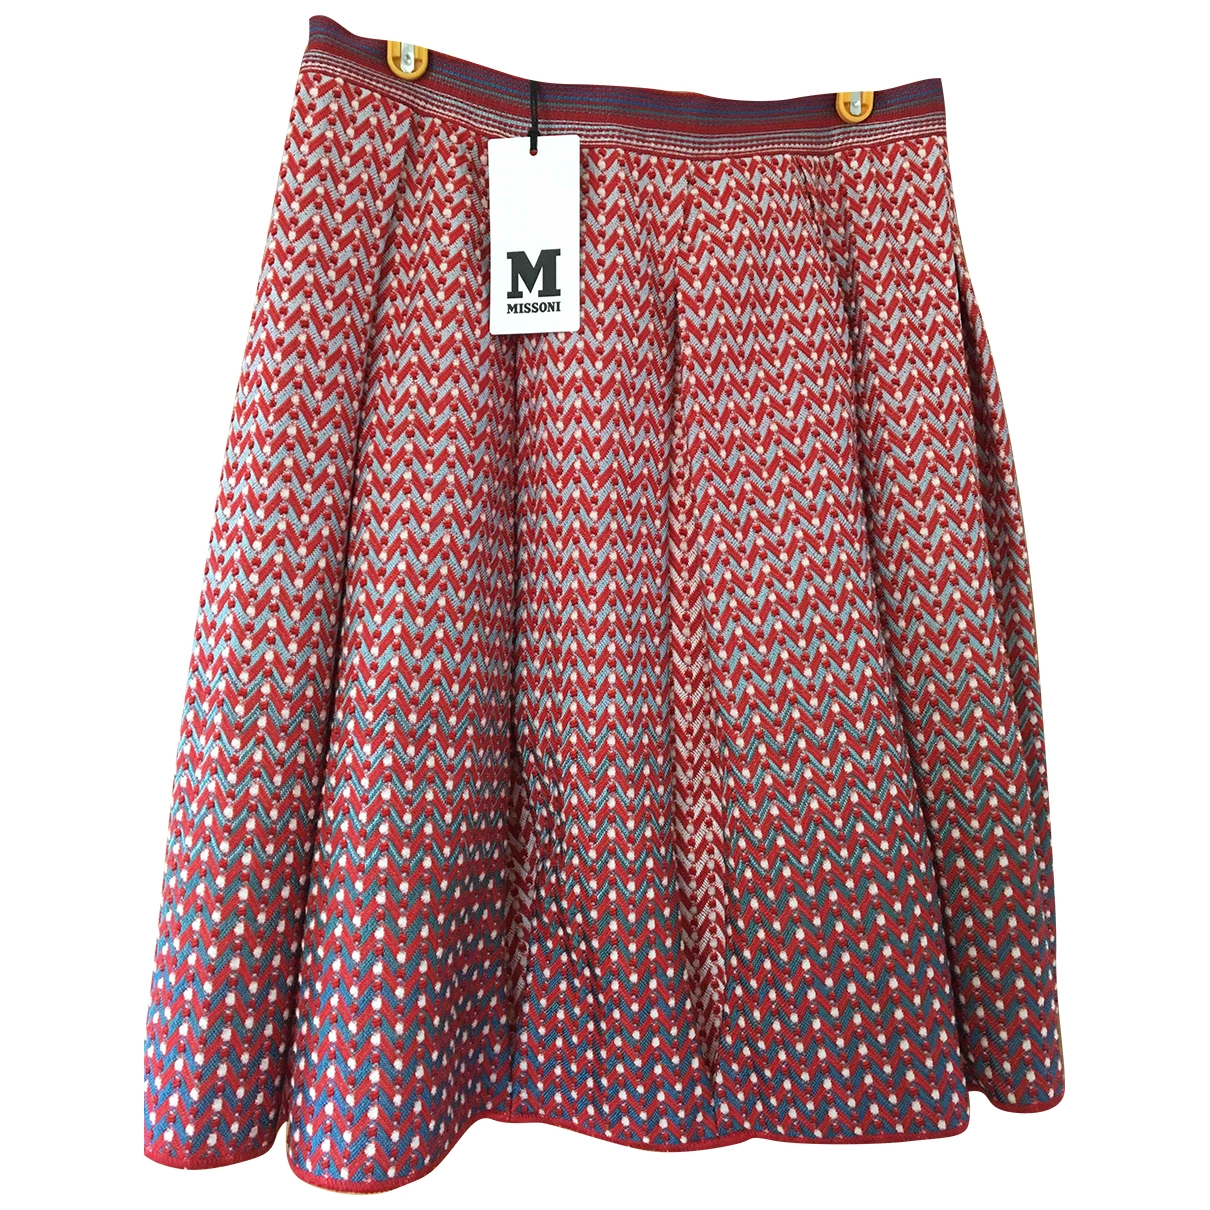 M Missoni \N Red Cotton skirt for Women 42 IT